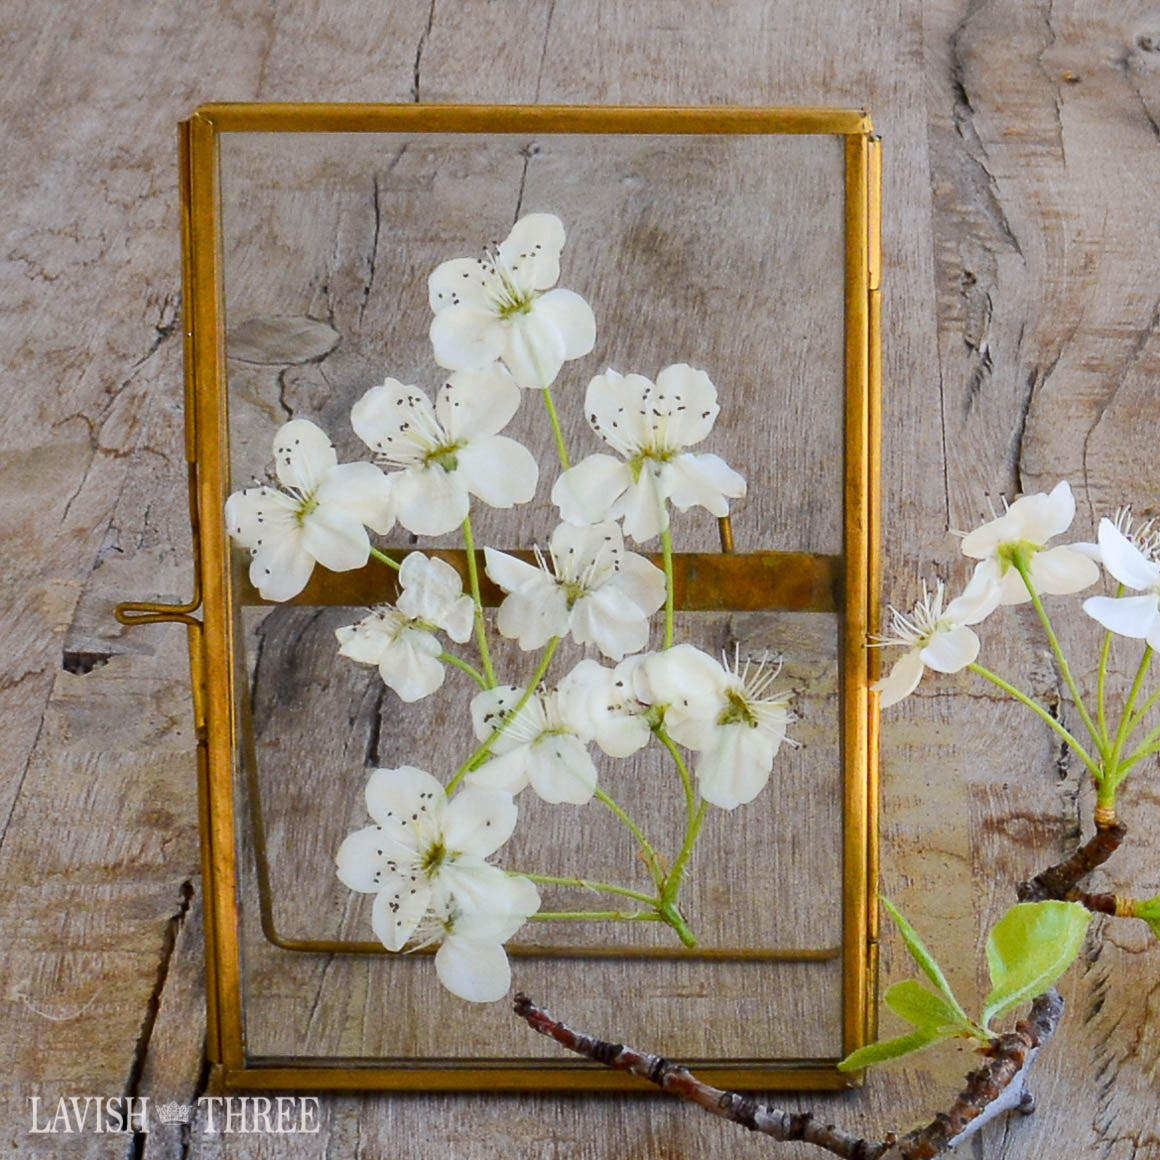 Heirloom brass and glass hinged vintage style standing floating frame 4x6